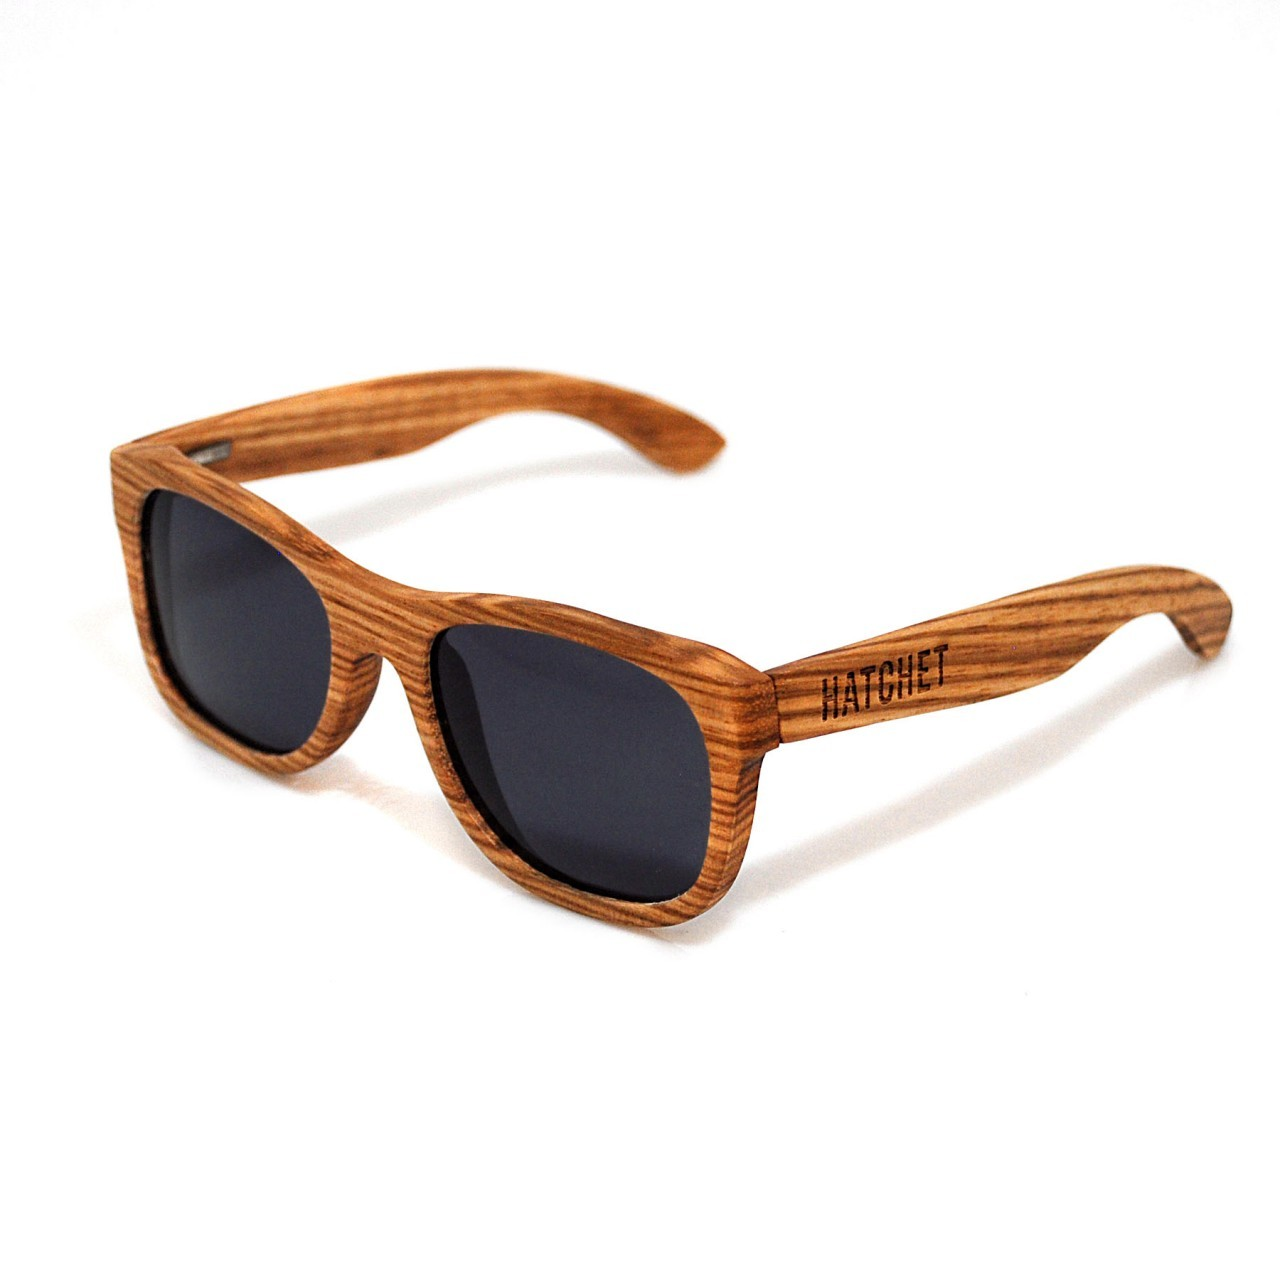 Hatchet Eyewear 15% off Coupon Code - Bamboo and Wood Sunglasses